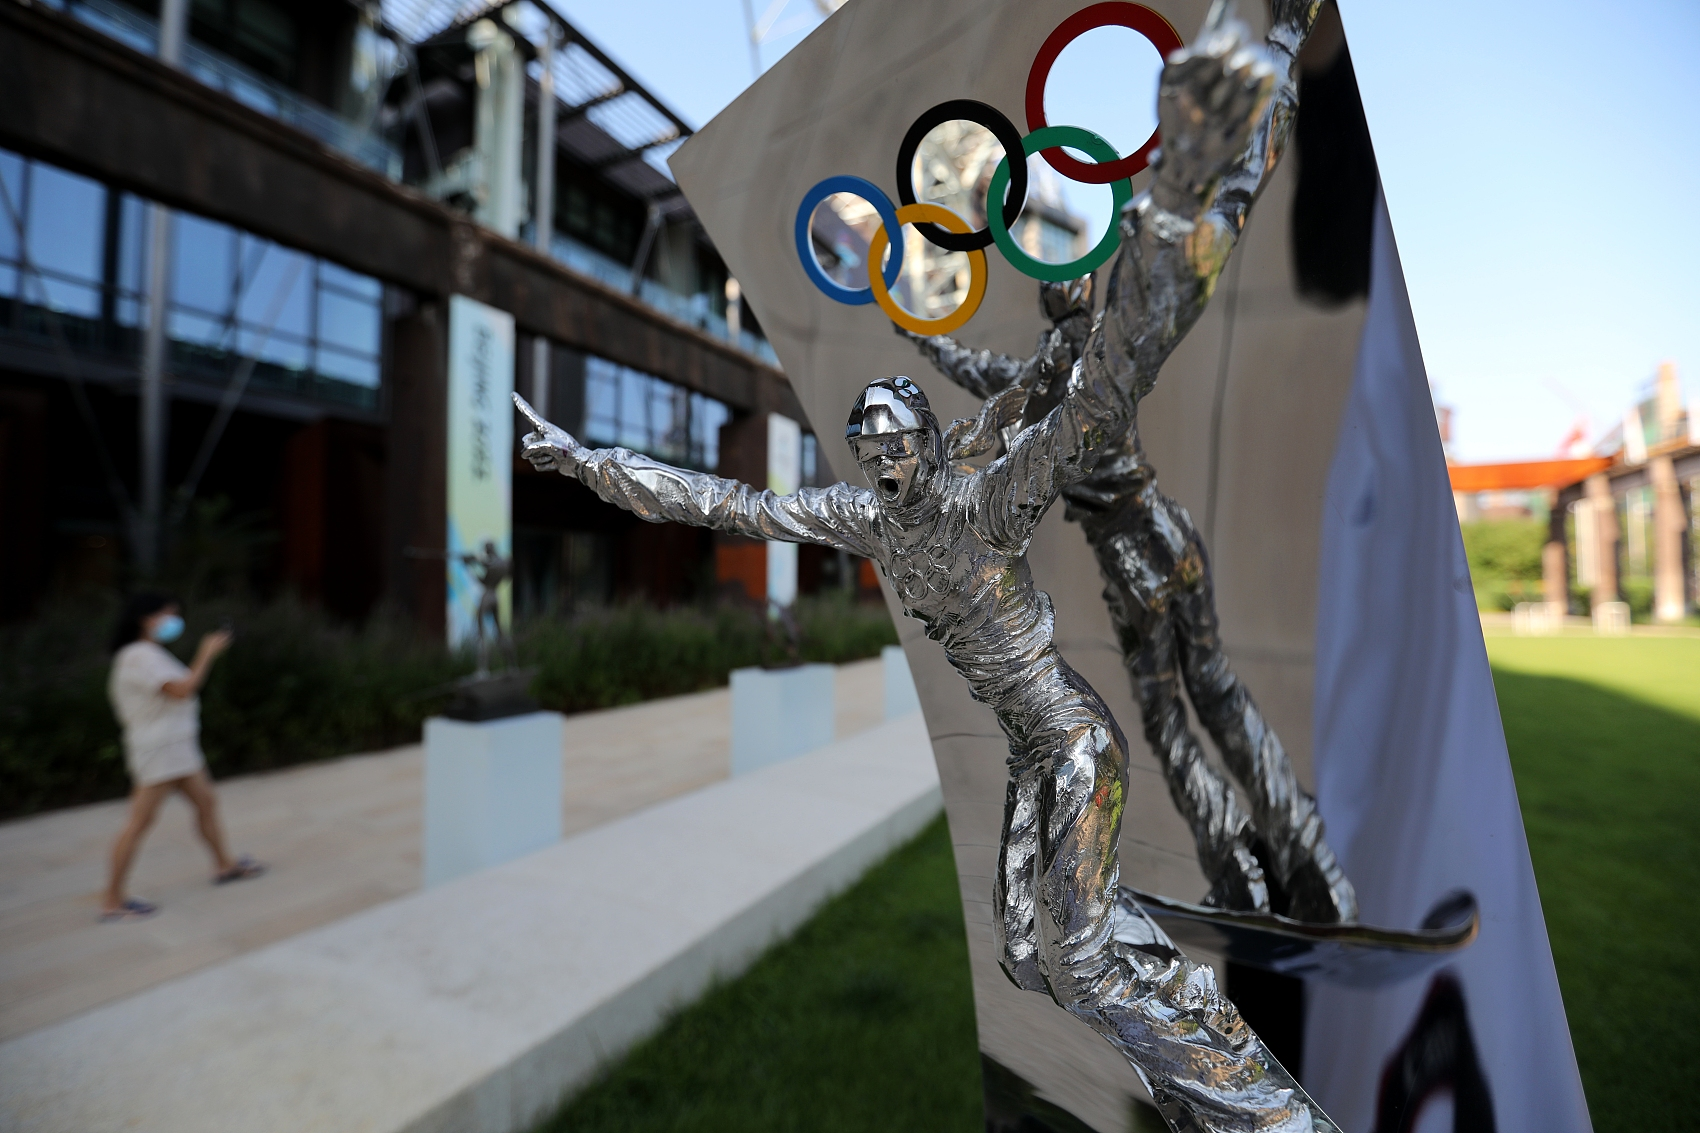 Beijing 2022 ready to fight uphill battle ahead, says organizers' vice president